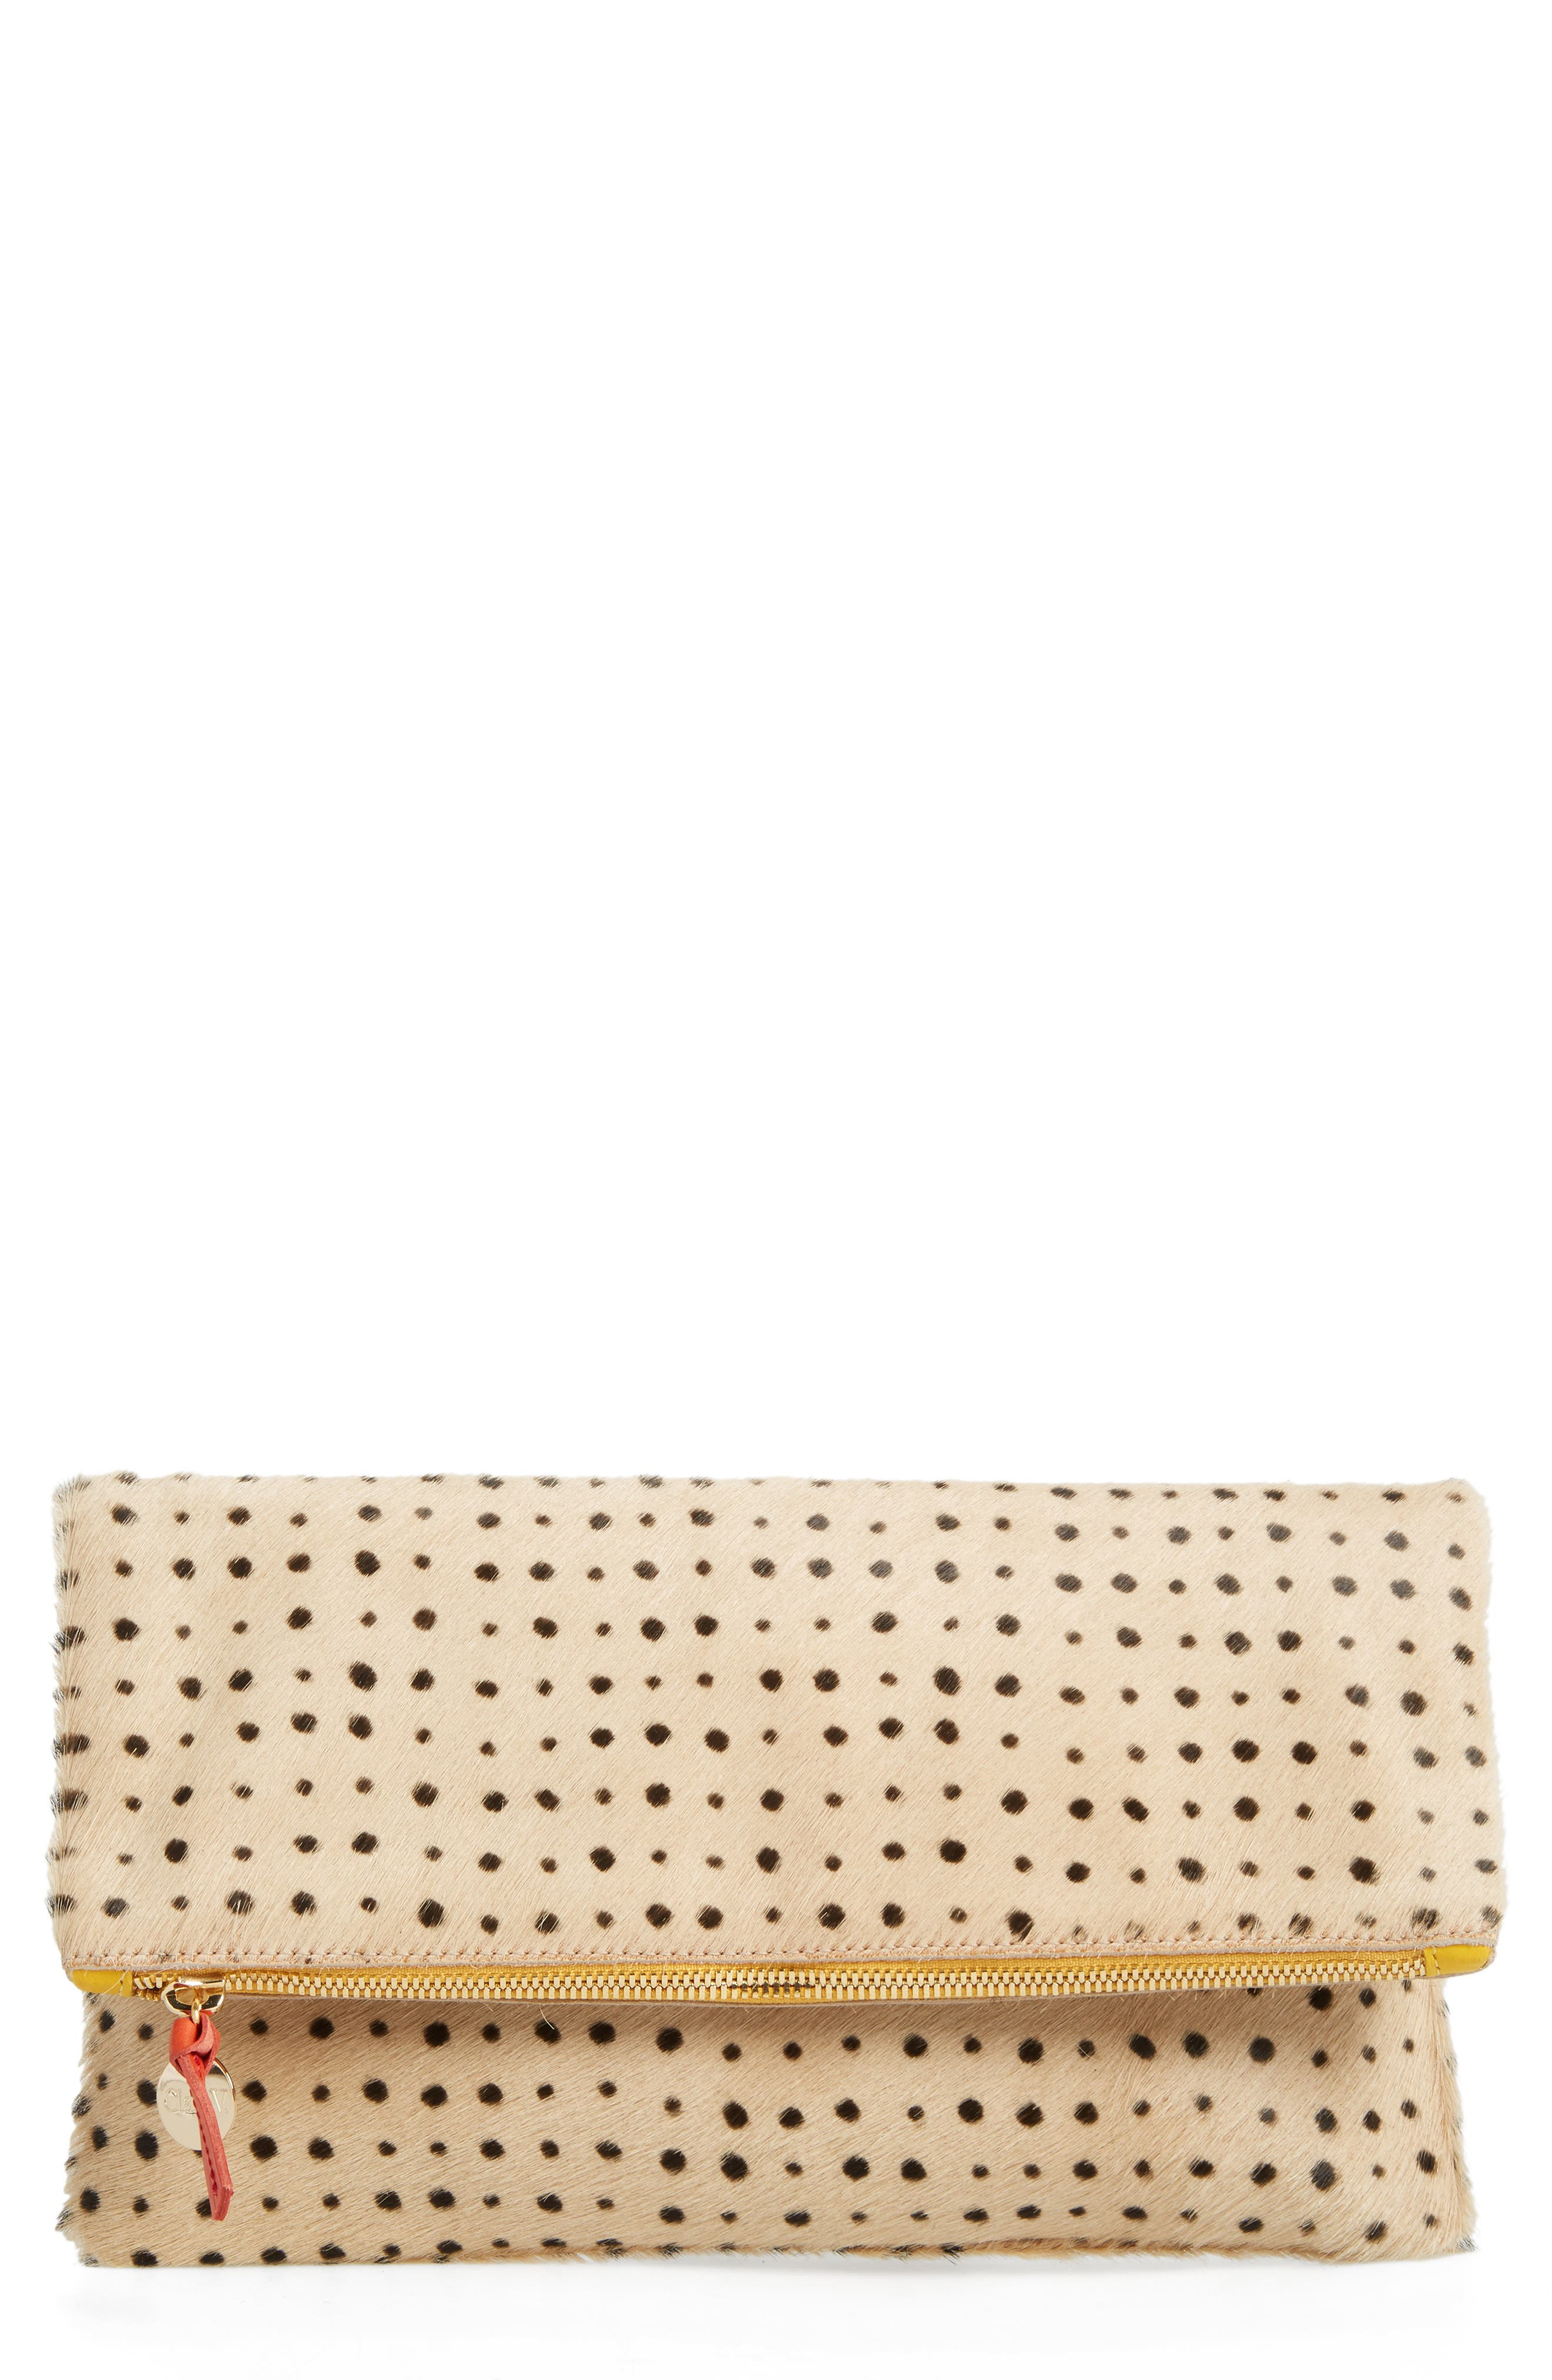 Genuine Calf Hair Foldover Clutch,                         Main,                         color, TAN SPOTTED HAIR ON